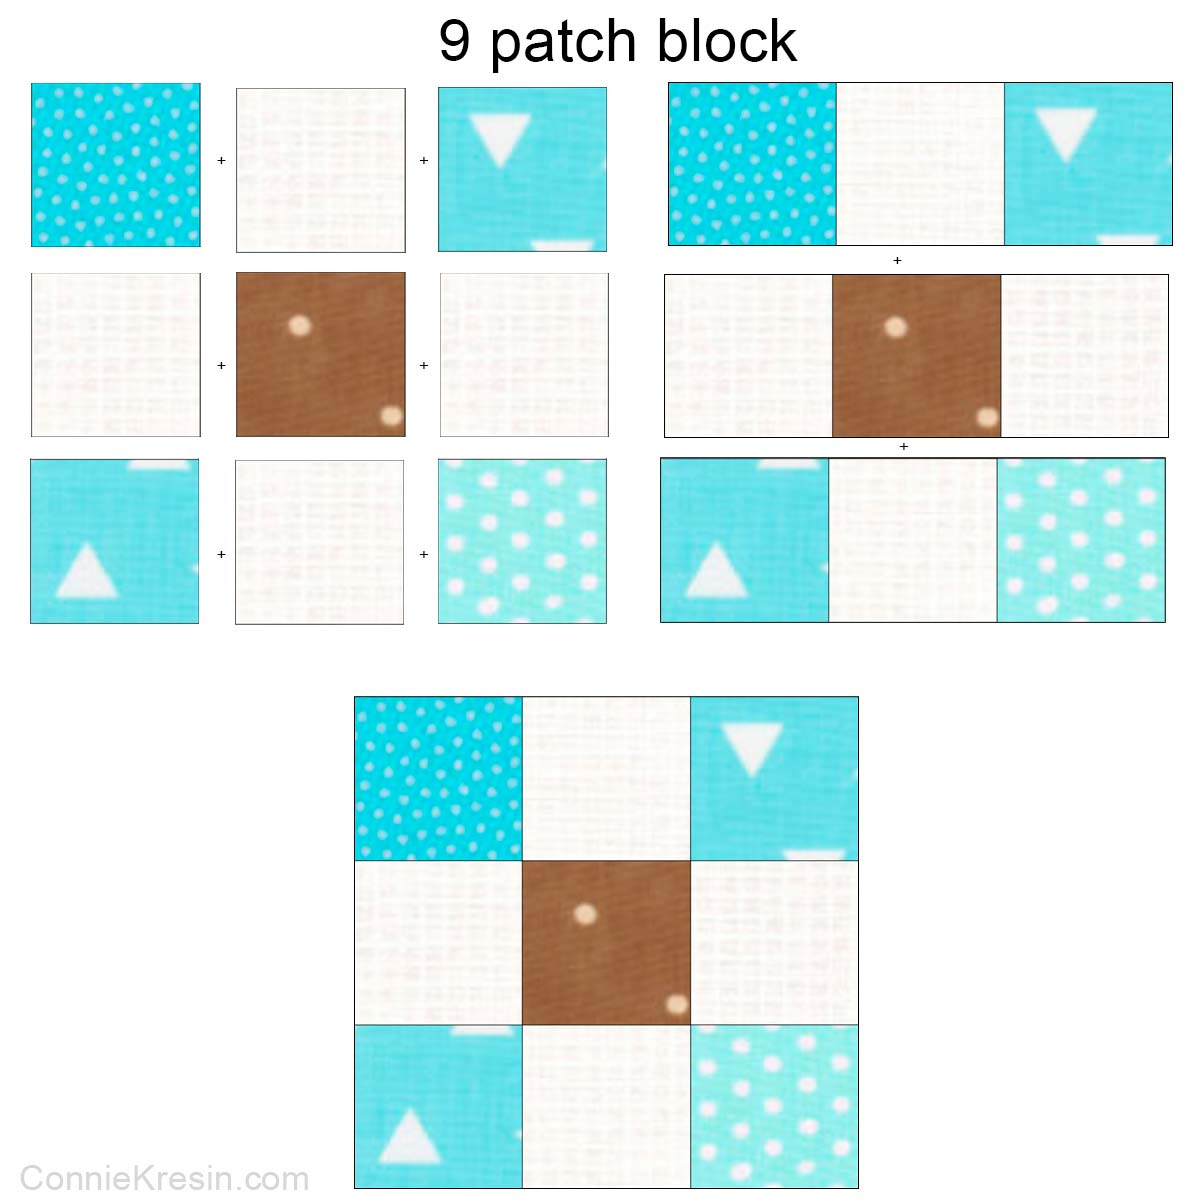 9 patch quilt block diagram